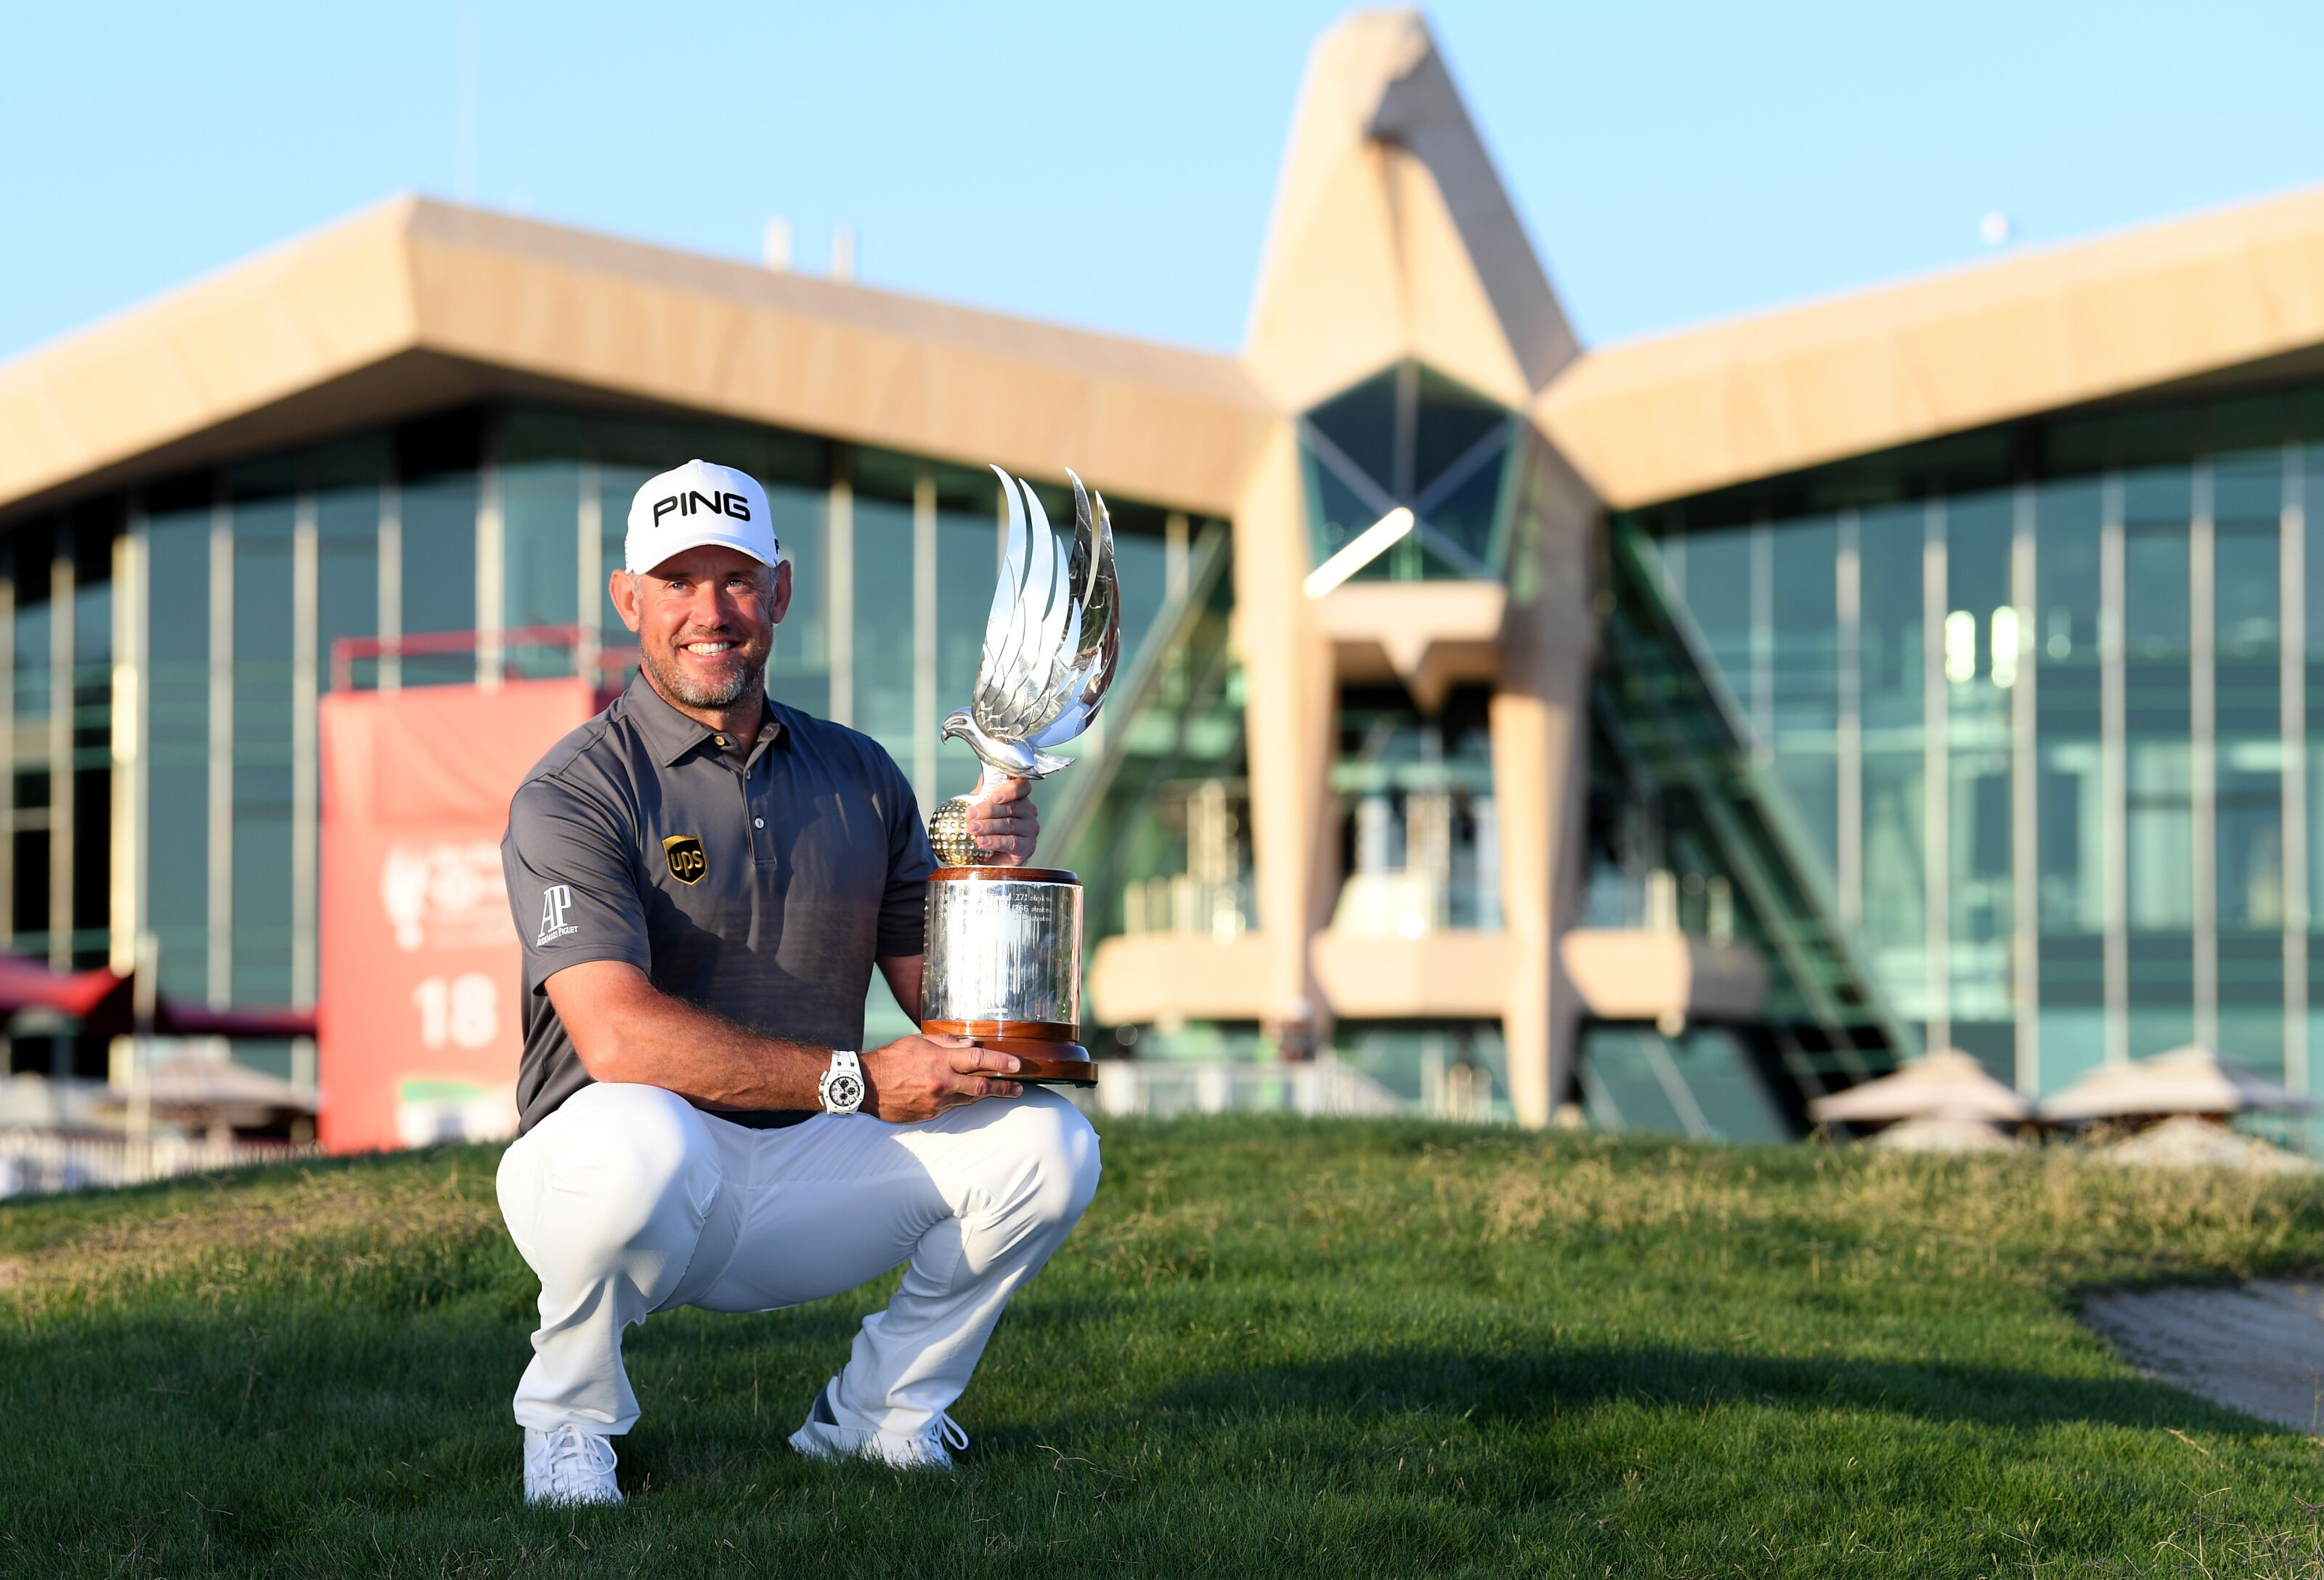 Westwood Moves Clear At Top Of Race to Dubai Standings